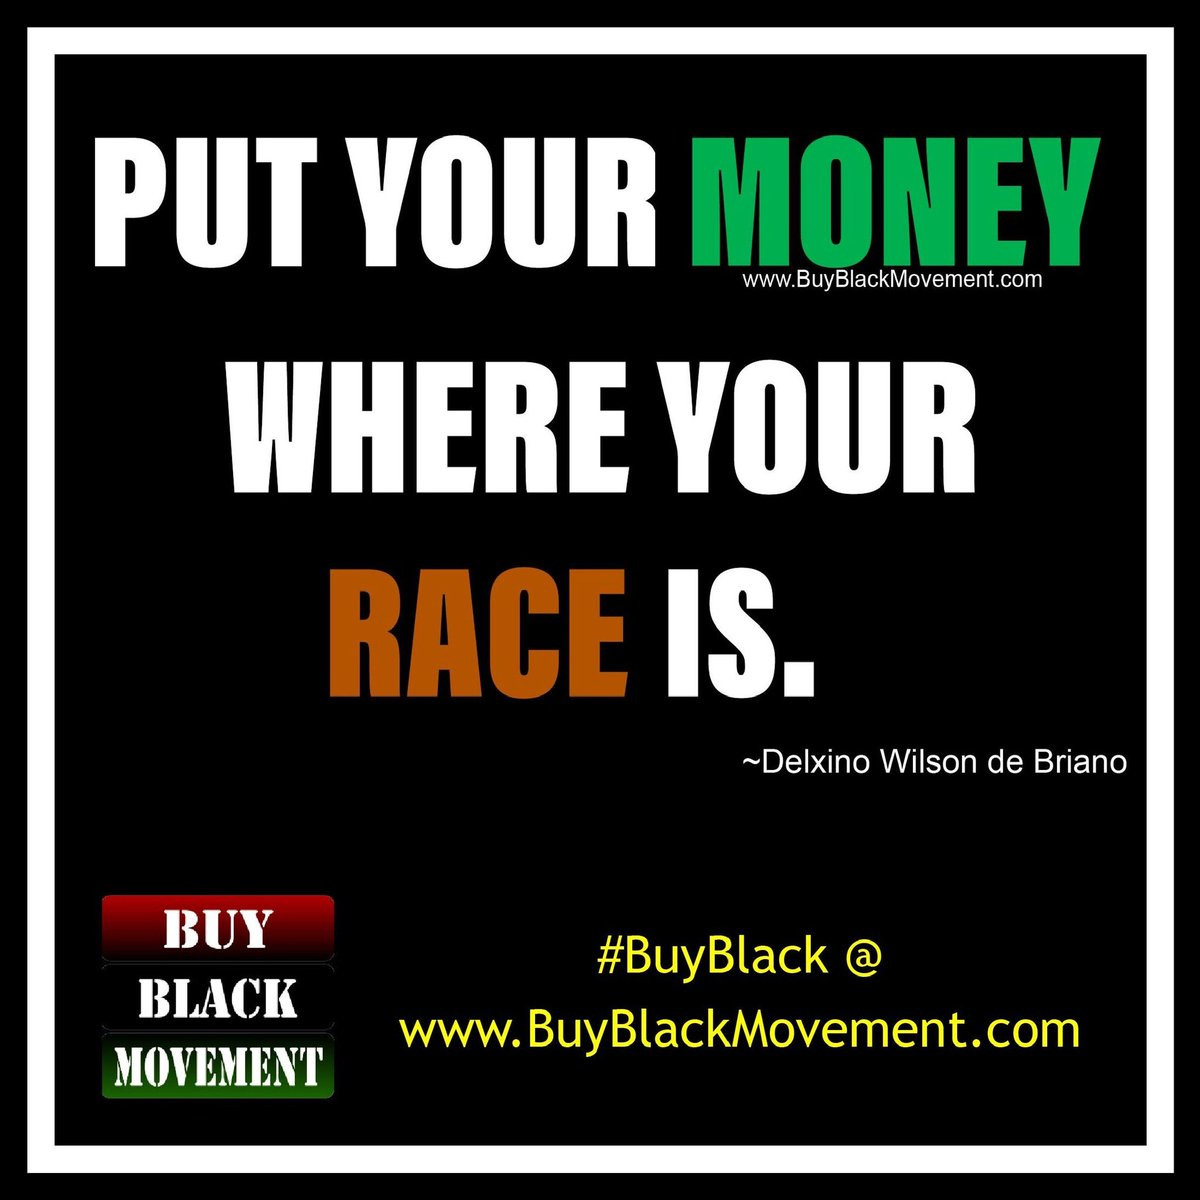 """Put your MONEY where your RACE is."" -Delxino Wilson de Briano  #buyblack @ http://www.BuyBlackMovement.com   #blackkings #blackqueen #fortheculture #blackpanther #wakanda #blackowned #blackunity #blackpower #marcusgarvey #african #blackpride #melanin #blackisbeautiful #problack #staywokepic.twitter.com/r3tmHmu9A6"